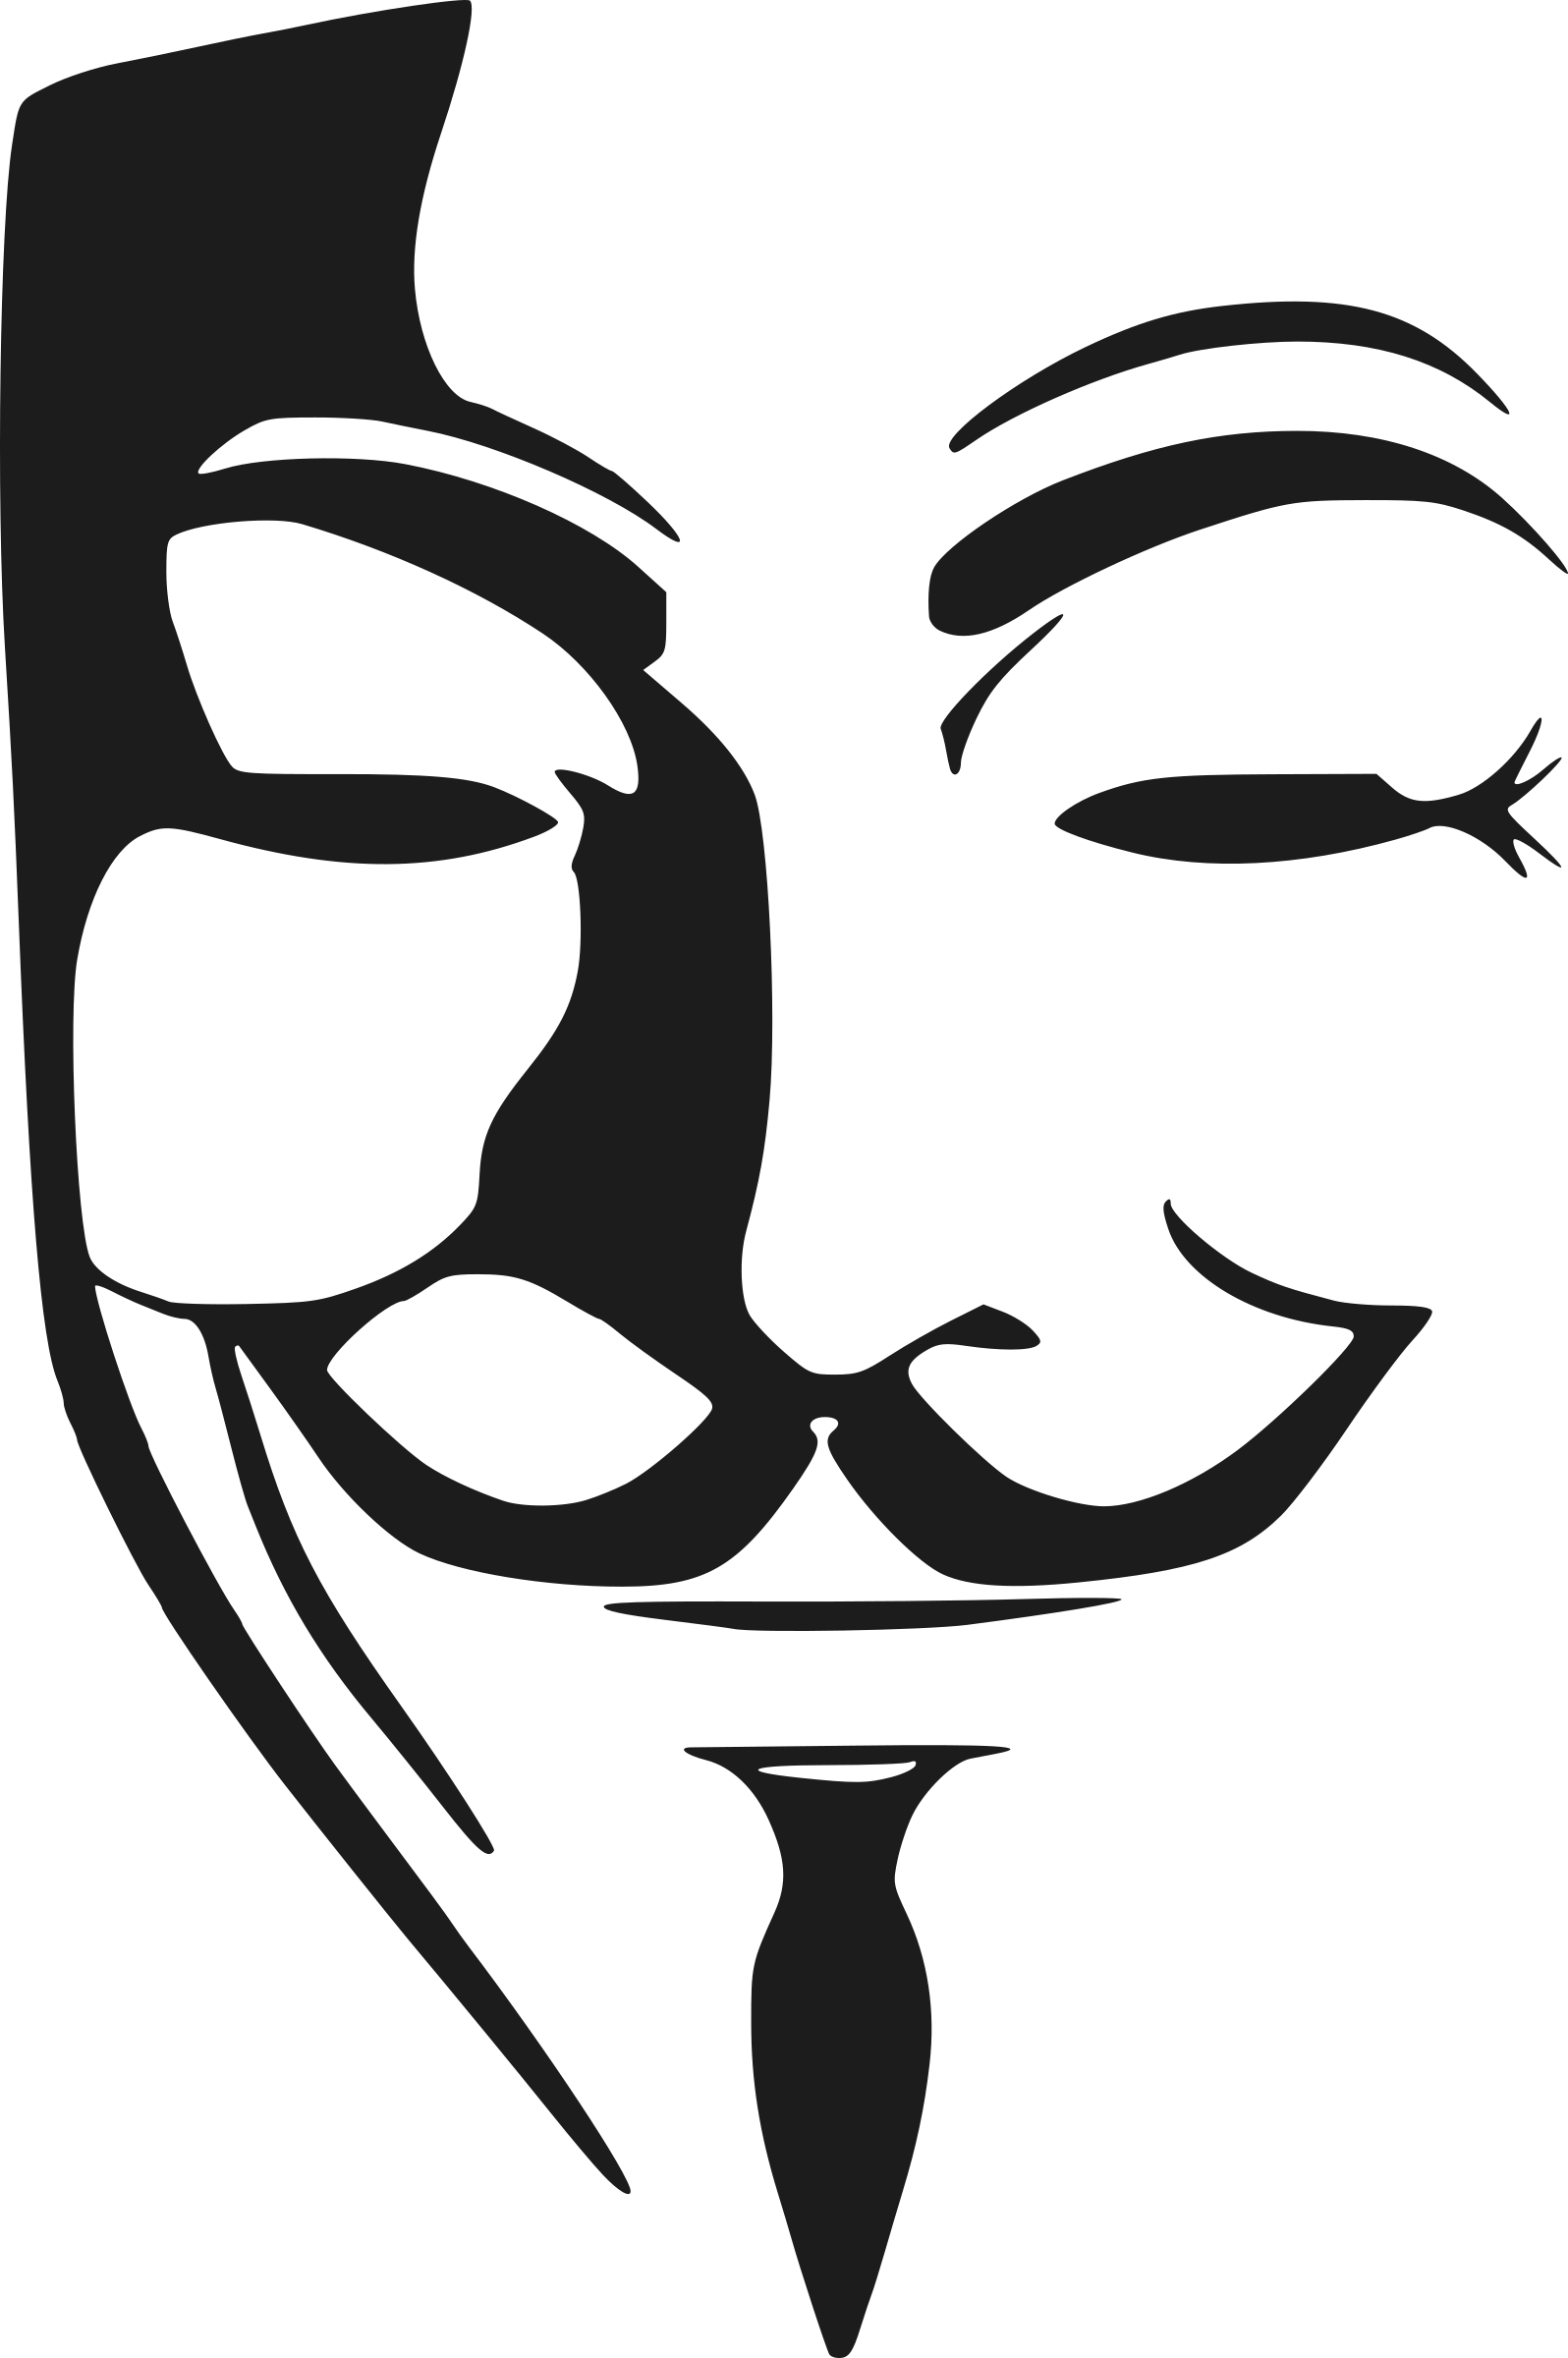 Clipart mask big image. Anonymous png jpg download